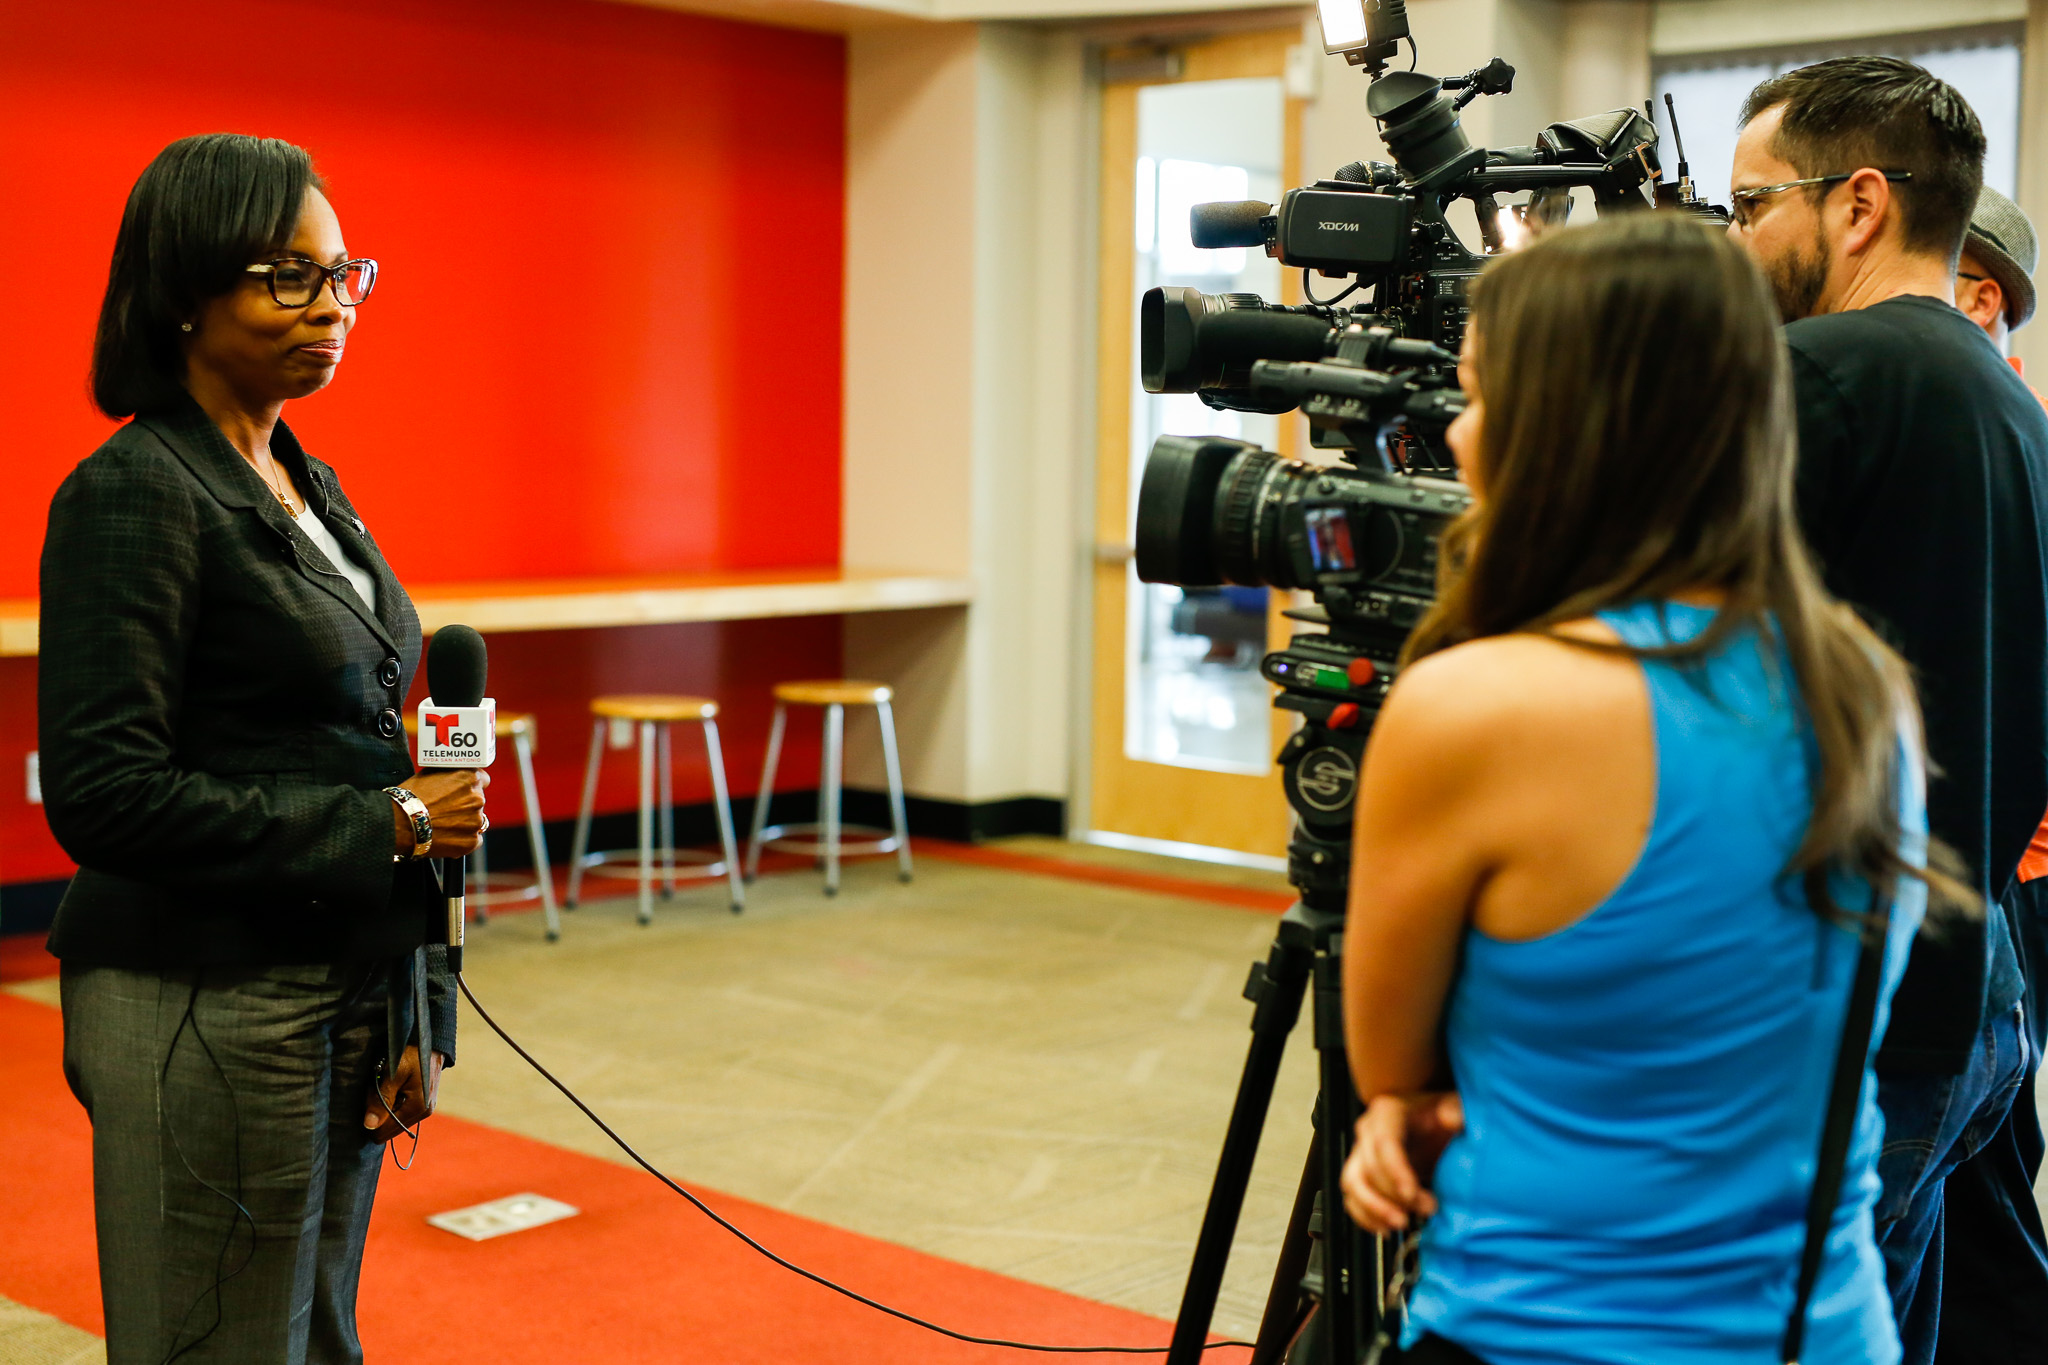 Mayor Ivy Taylor gives an interview to television stations following her presentation. Photo by Scott Ball.